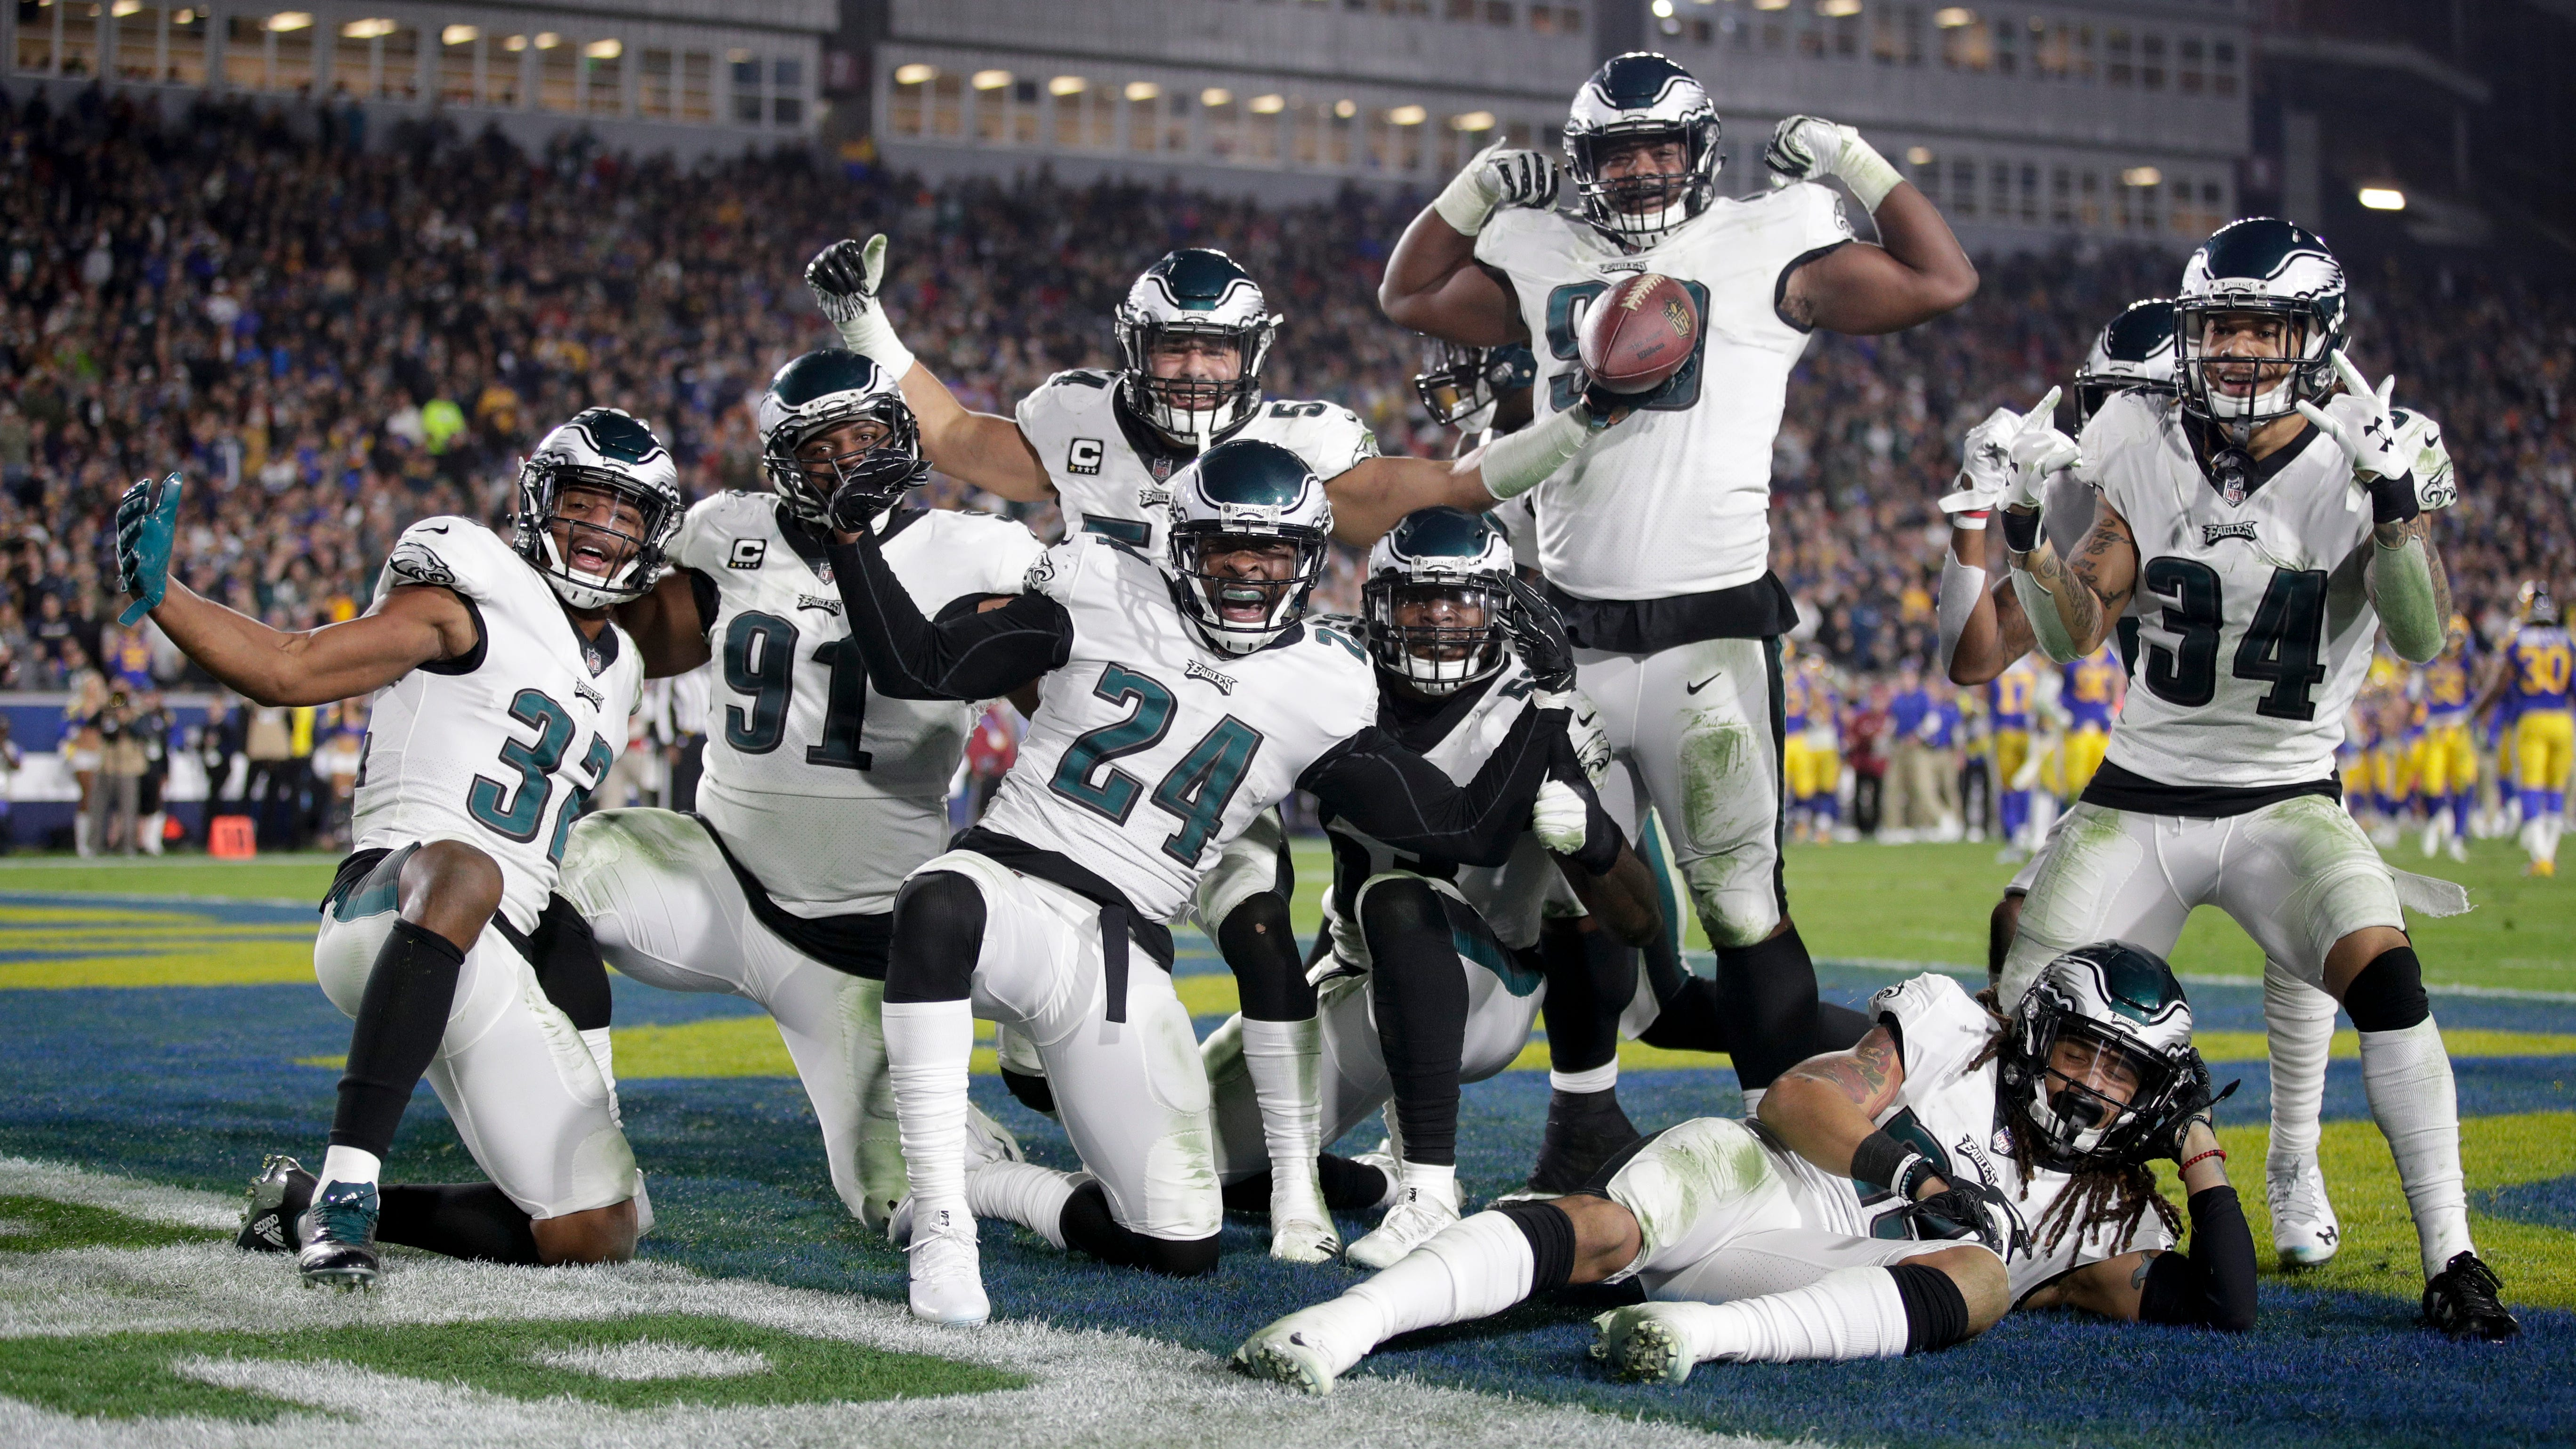 The Eagles were big underdogs without starting quarterback Carson Wentz, but the defending champs came up big against the Rams.